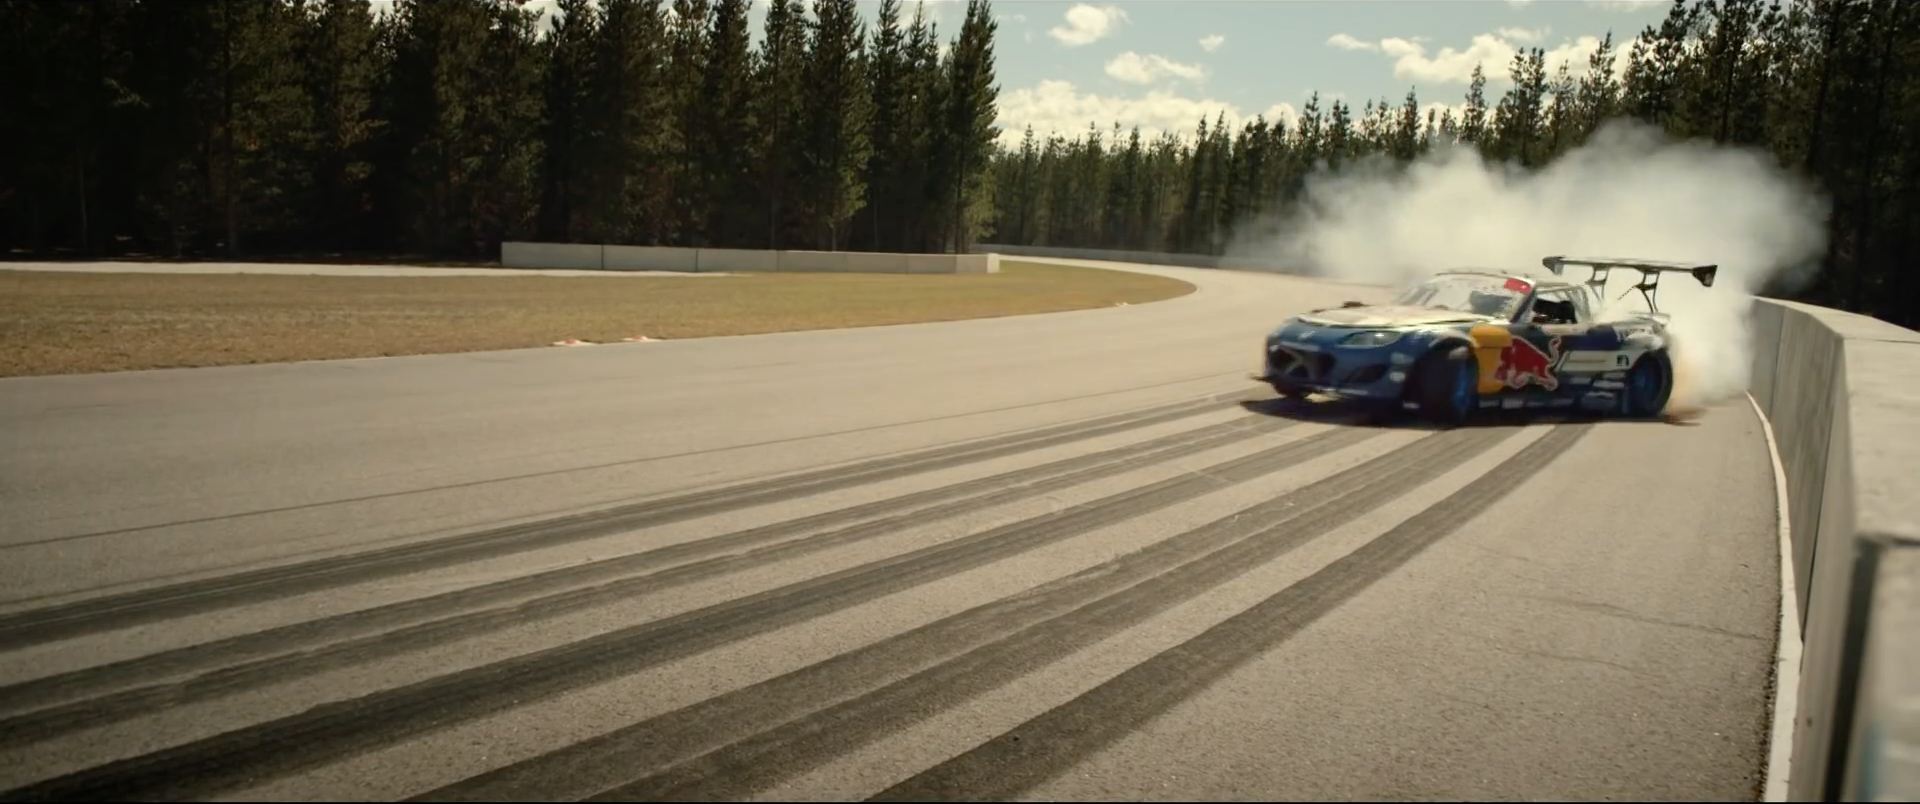 1,000hp MX-5 Drift Car Gets 360-Degree Camera, Watching Is All-Round Magic